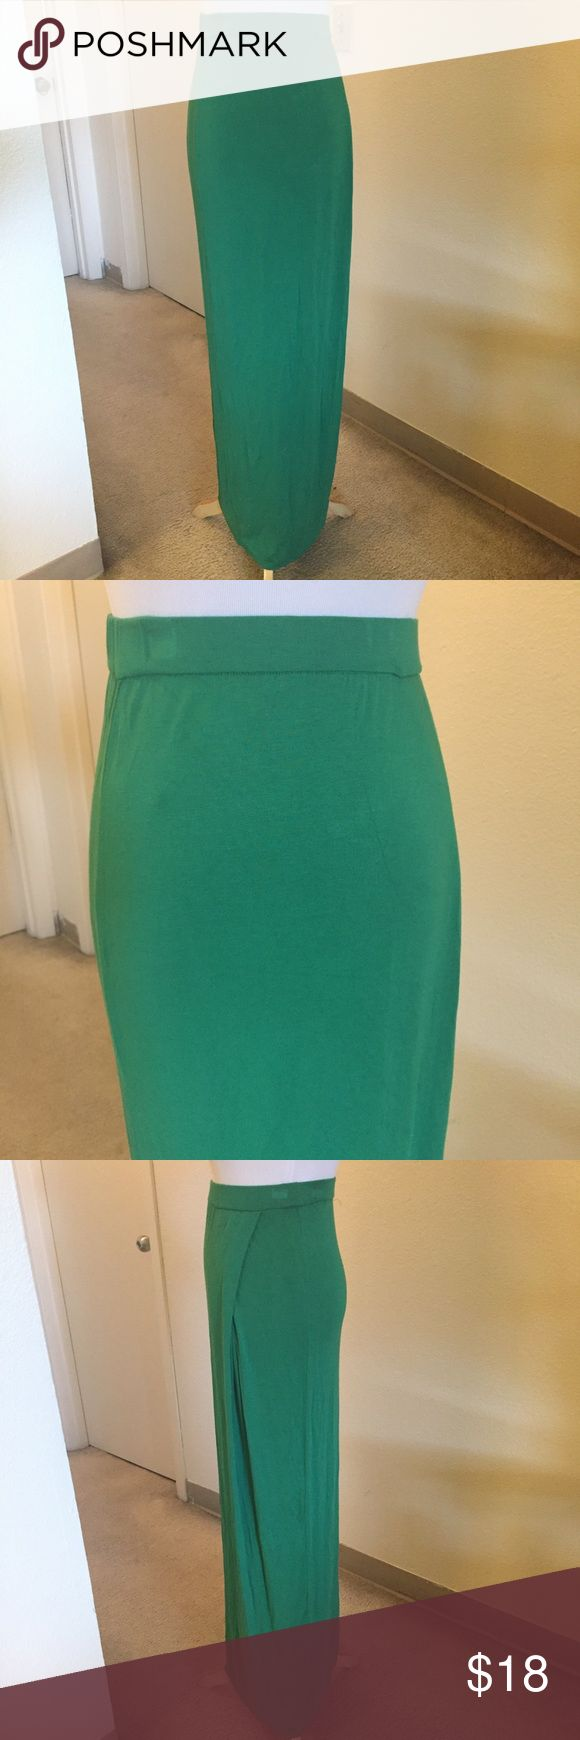 Armani Exchange Green Skirt Green long skirt from Armani Exchange which have been worn twice. Very sort material, 95% Rayon and 5% Spandex. Armani Exchange Skirts